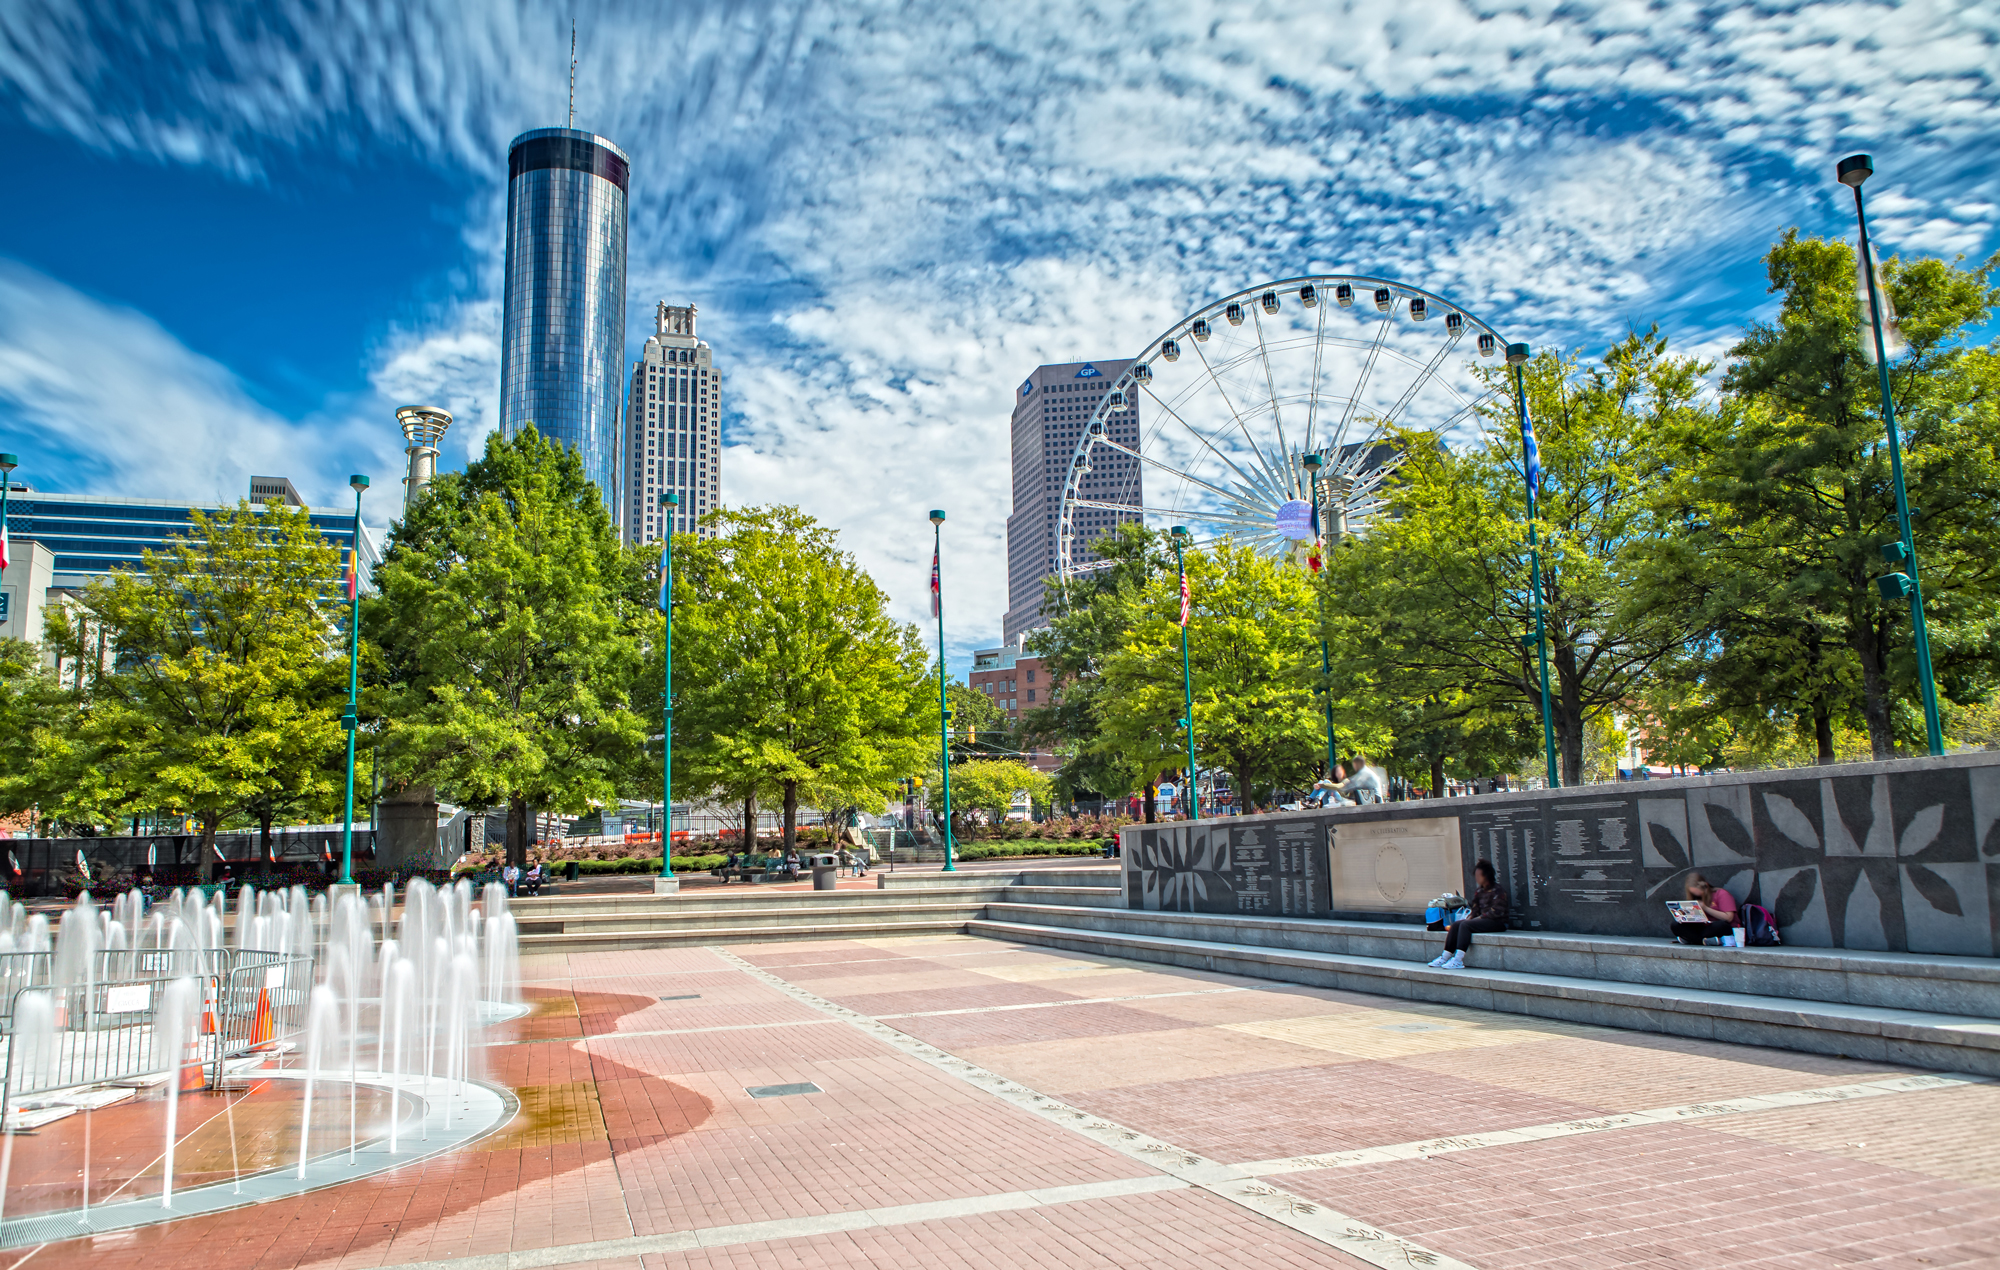 Centennial Olympic Park in Atlanta, Georgia